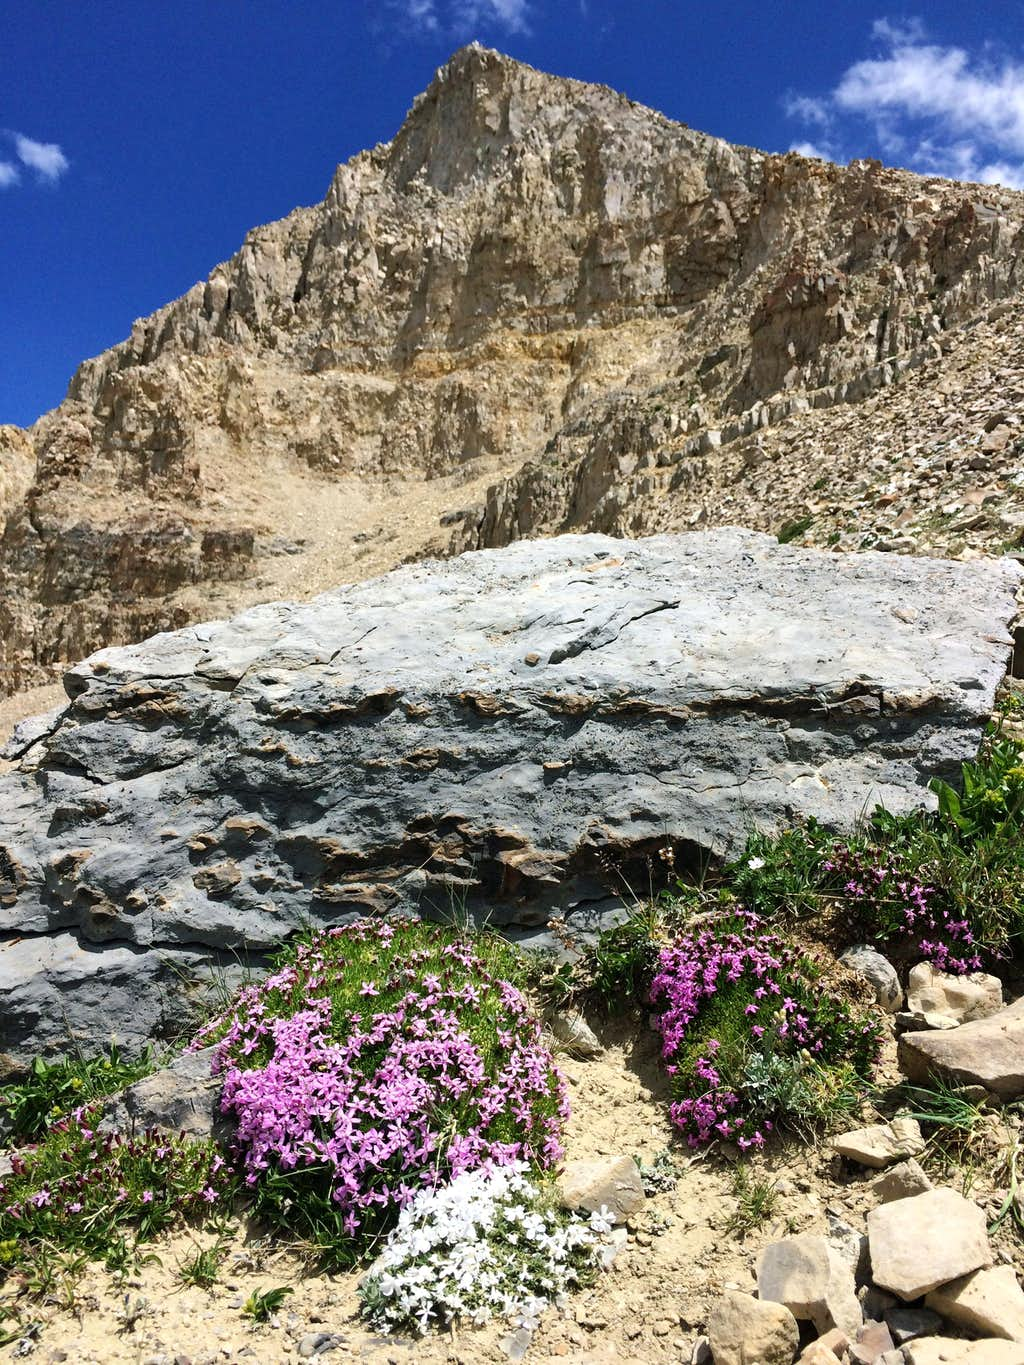 More South Timp wildflowers